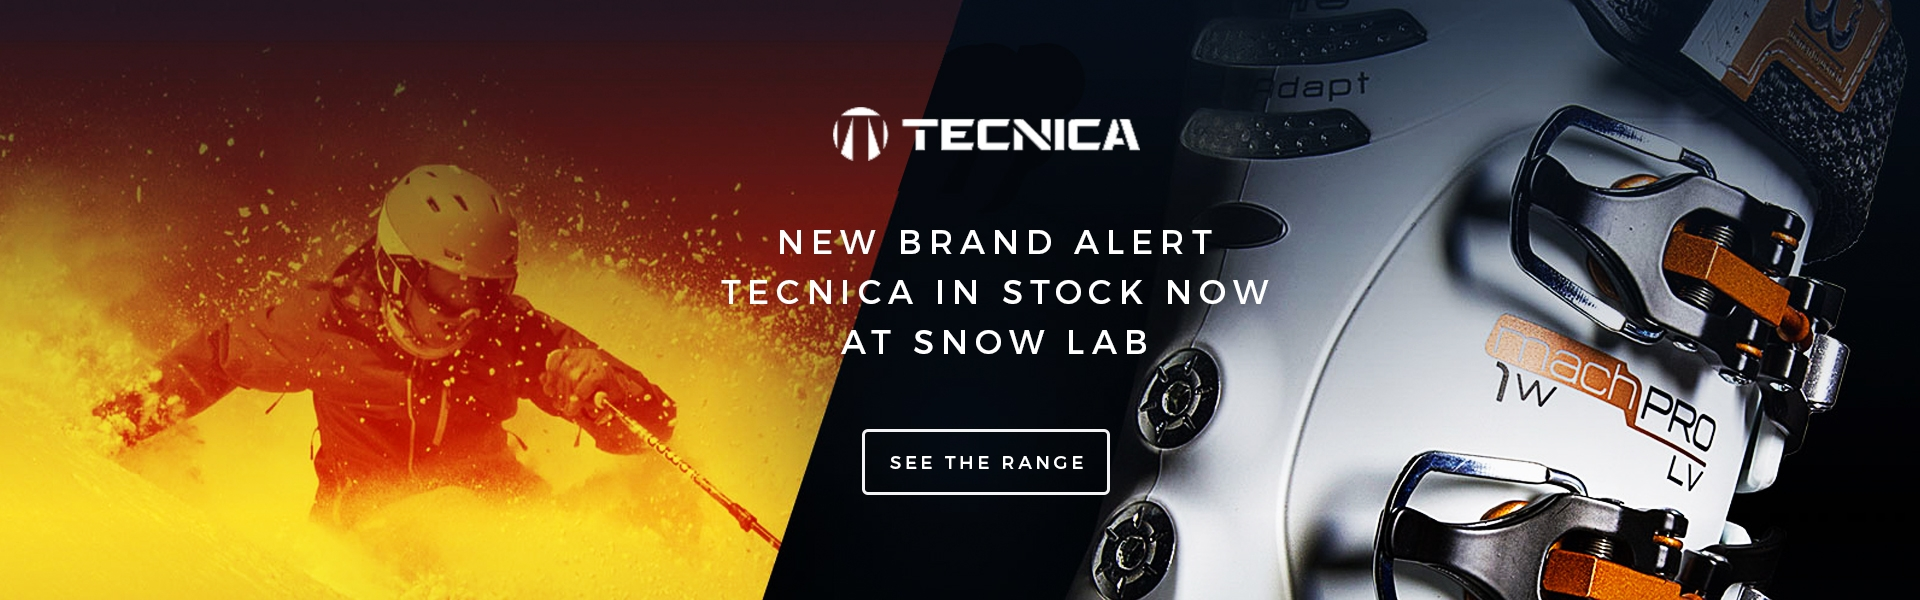 Buy Tecnica Ski Boots and Tecnica Ski Bindings UK